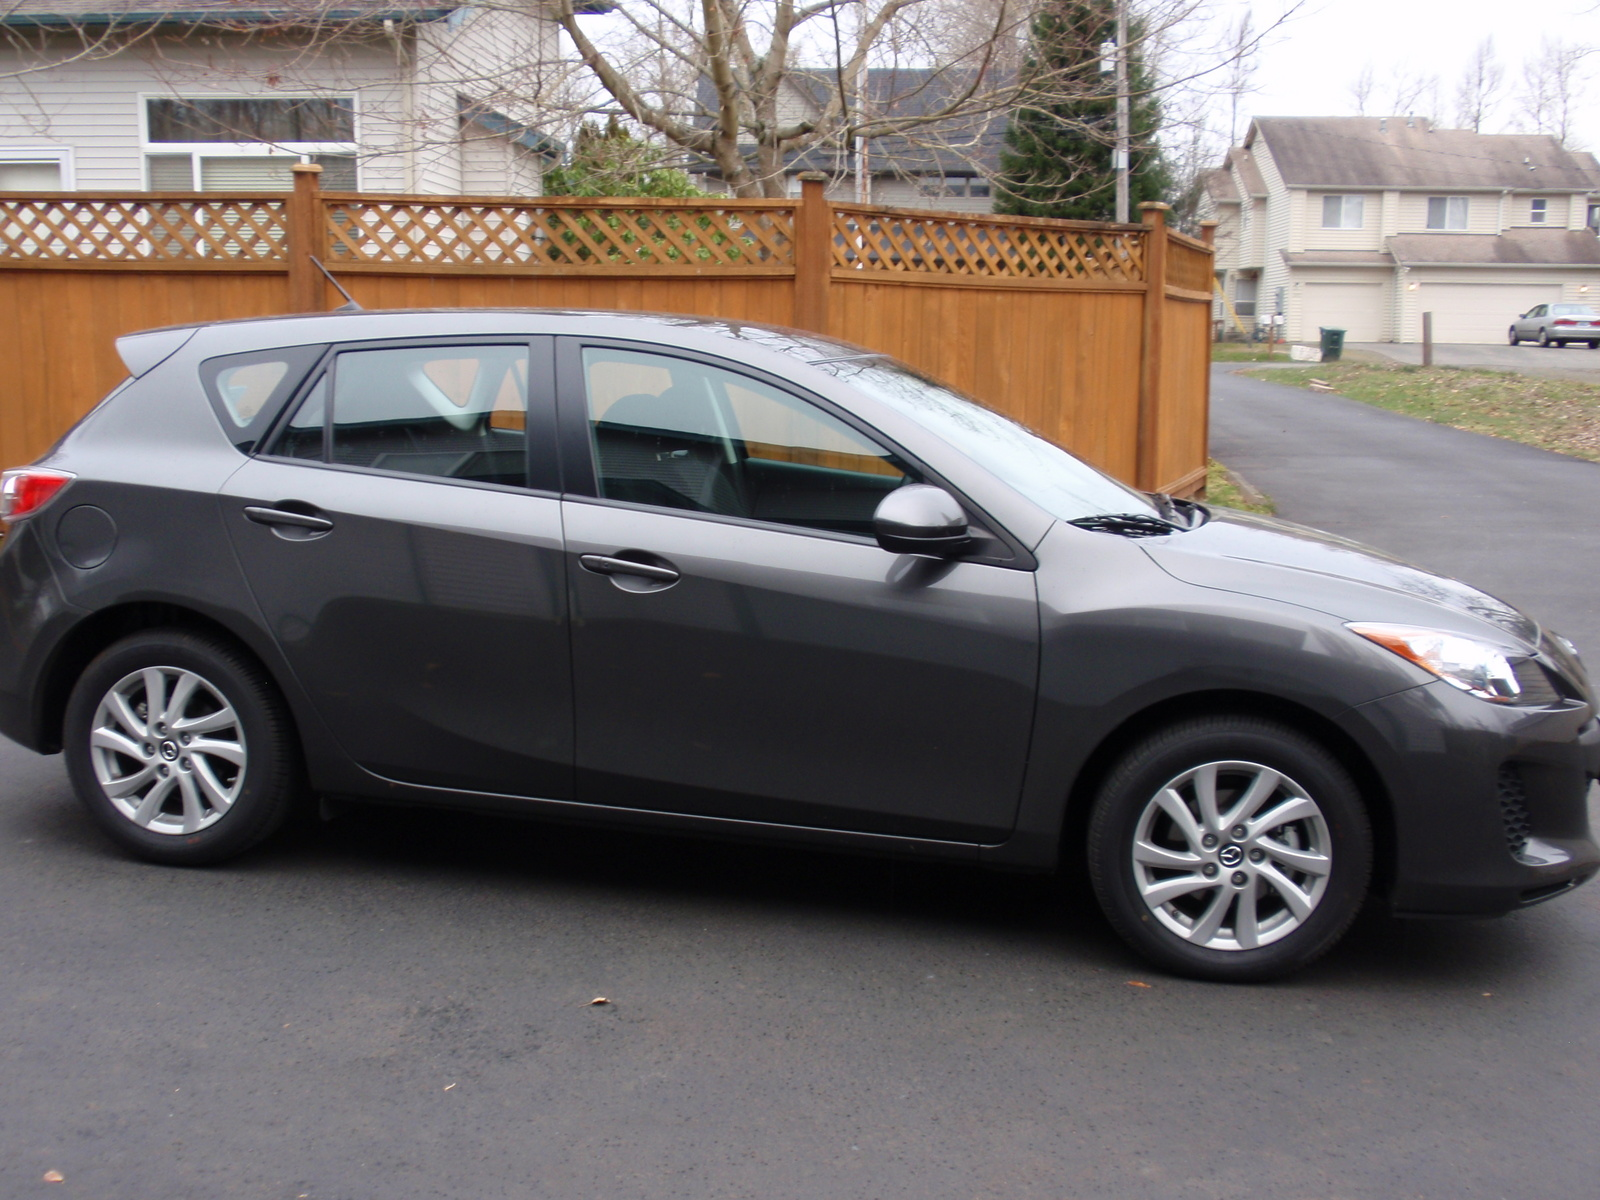 2013 mazda mazda3 exterior pictures cargurus. Black Bedroom Furniture Sets. Home Design Ideas